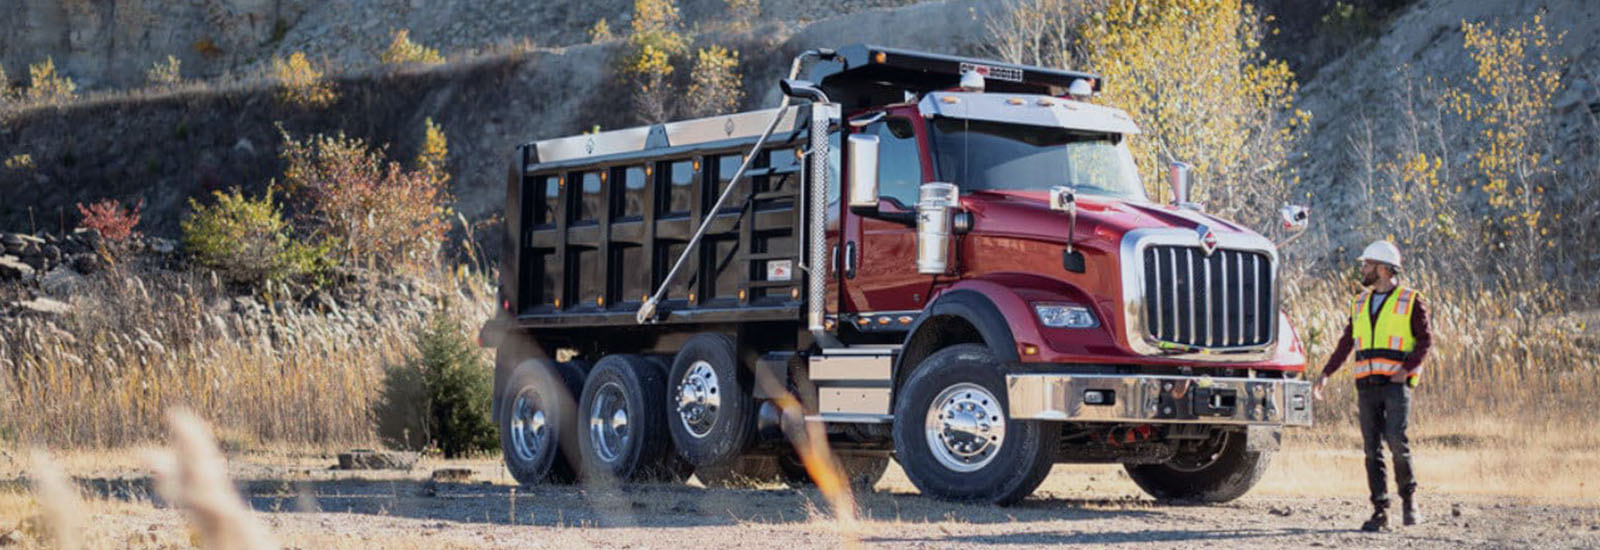 Dump Truck Insurance Texas: All You Need to Know